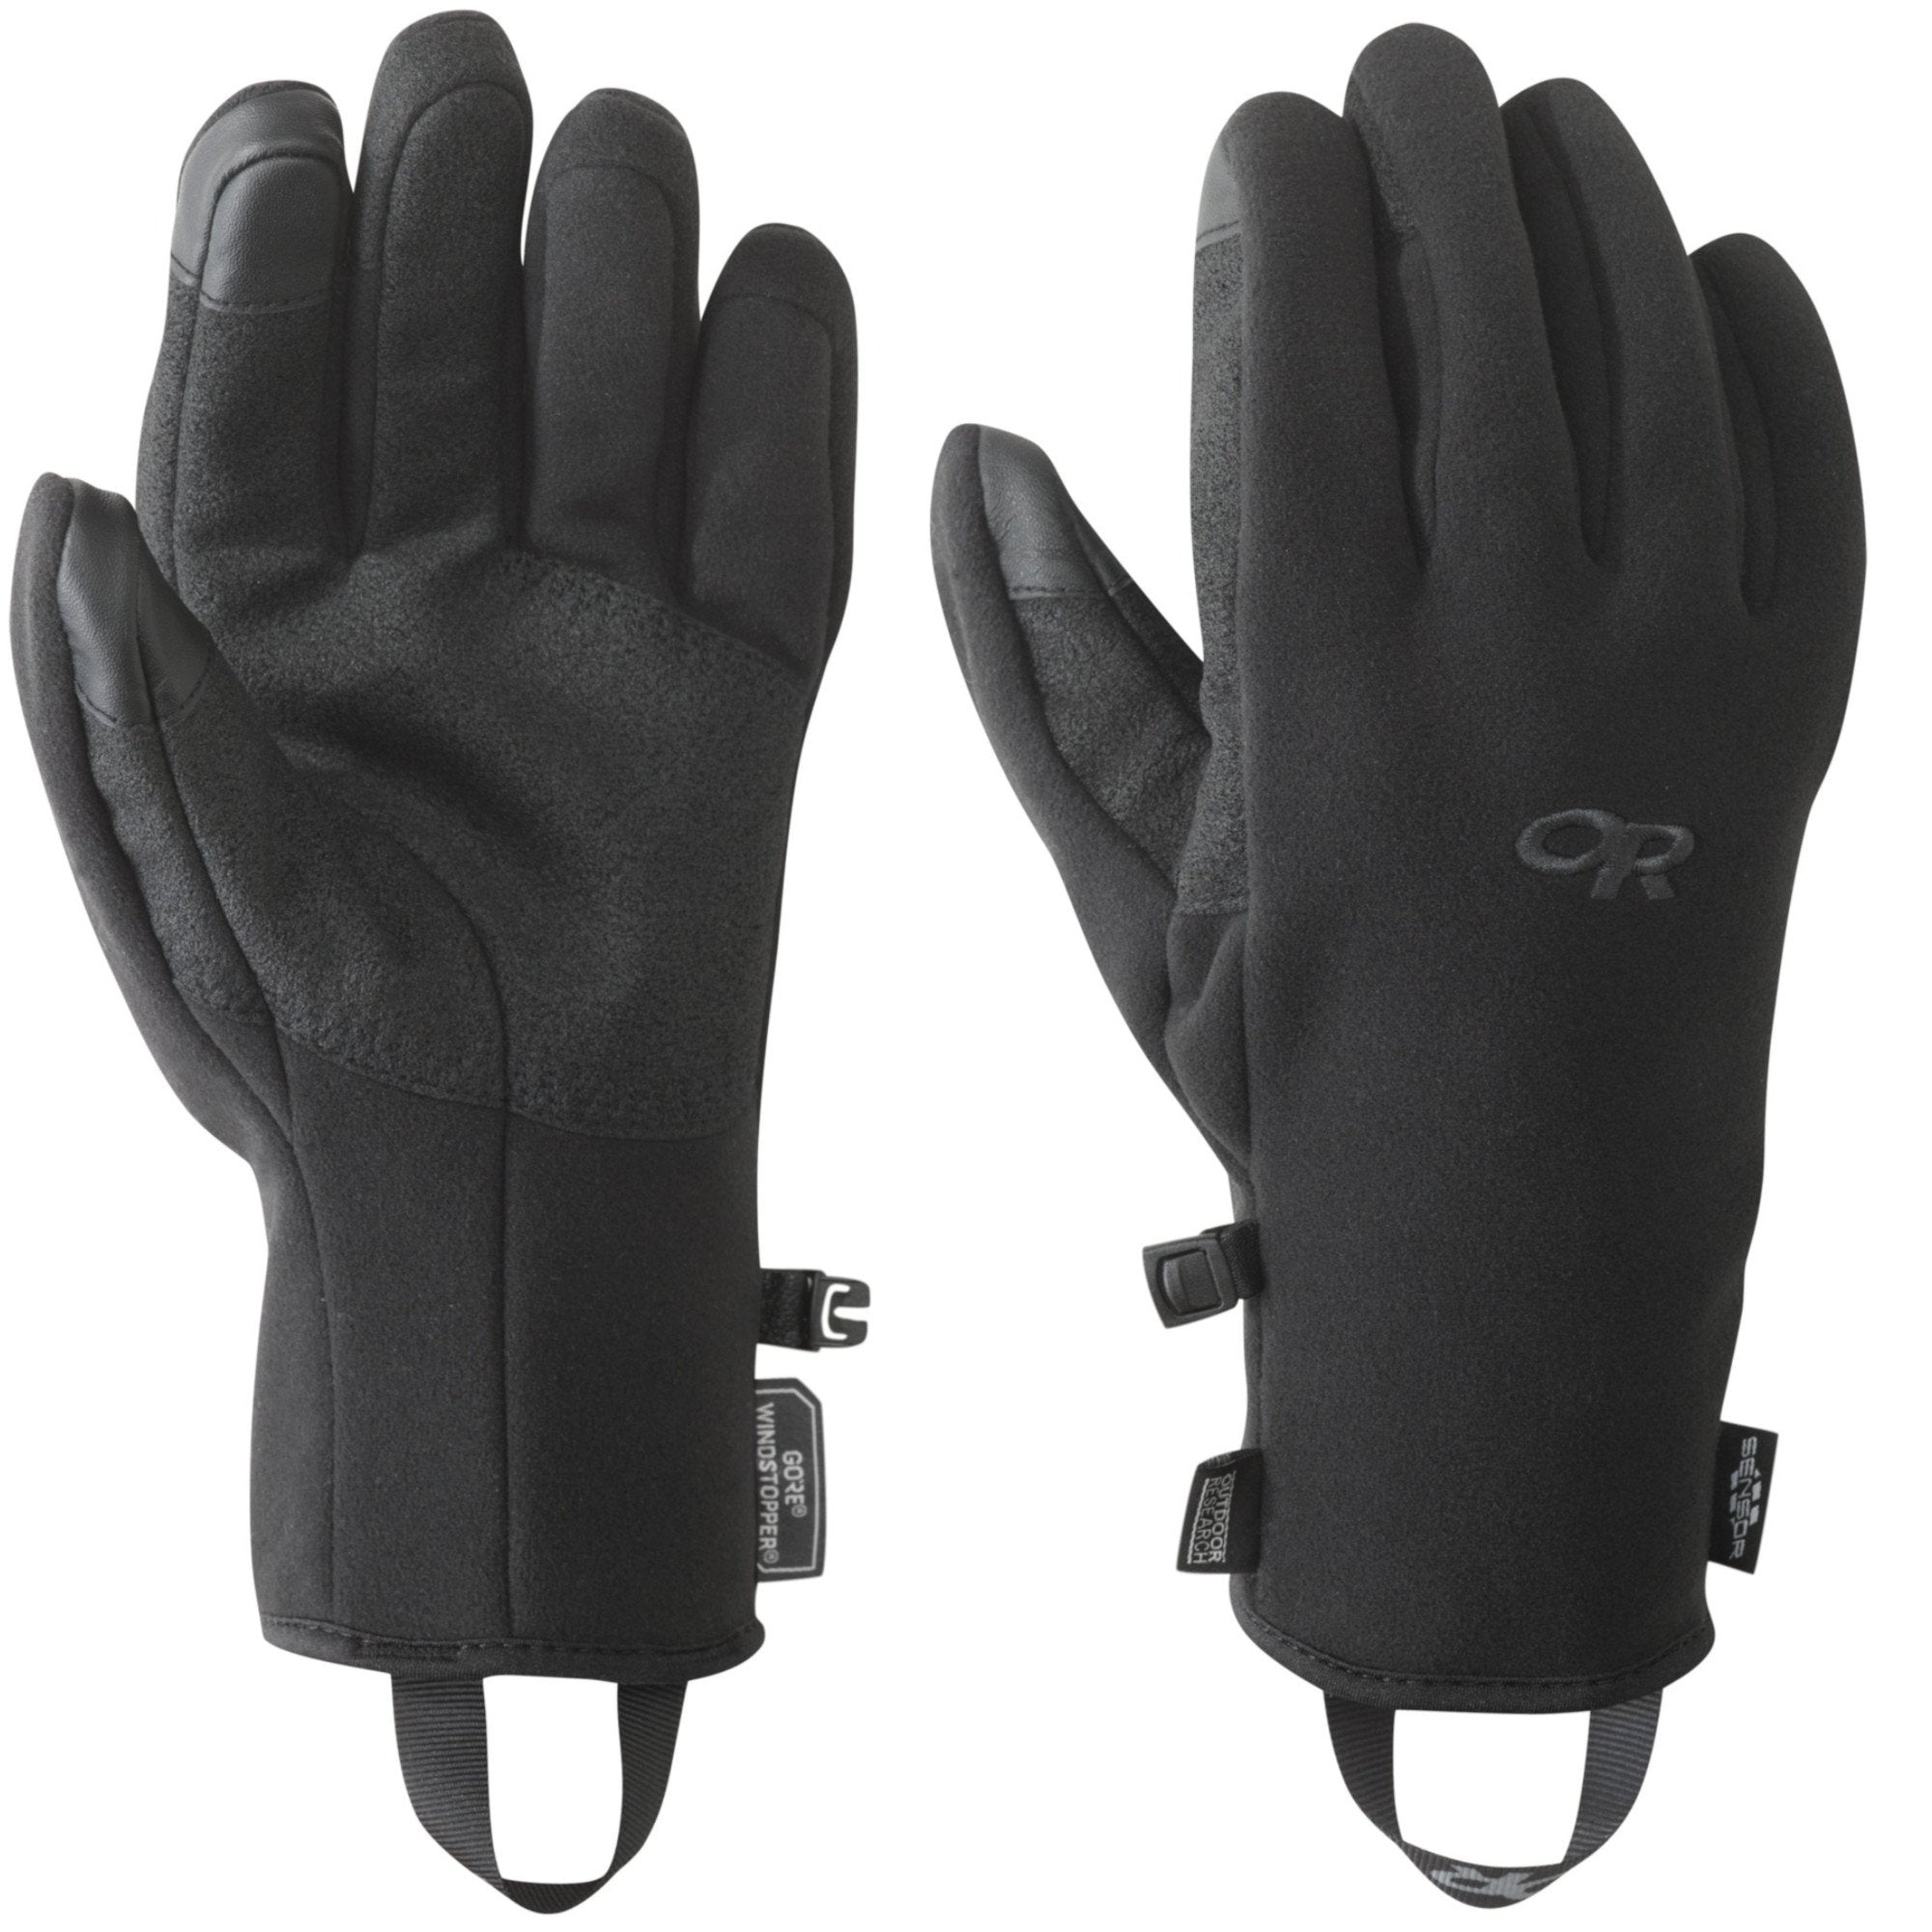 Outdoor Research Gripper Sensor Gloves